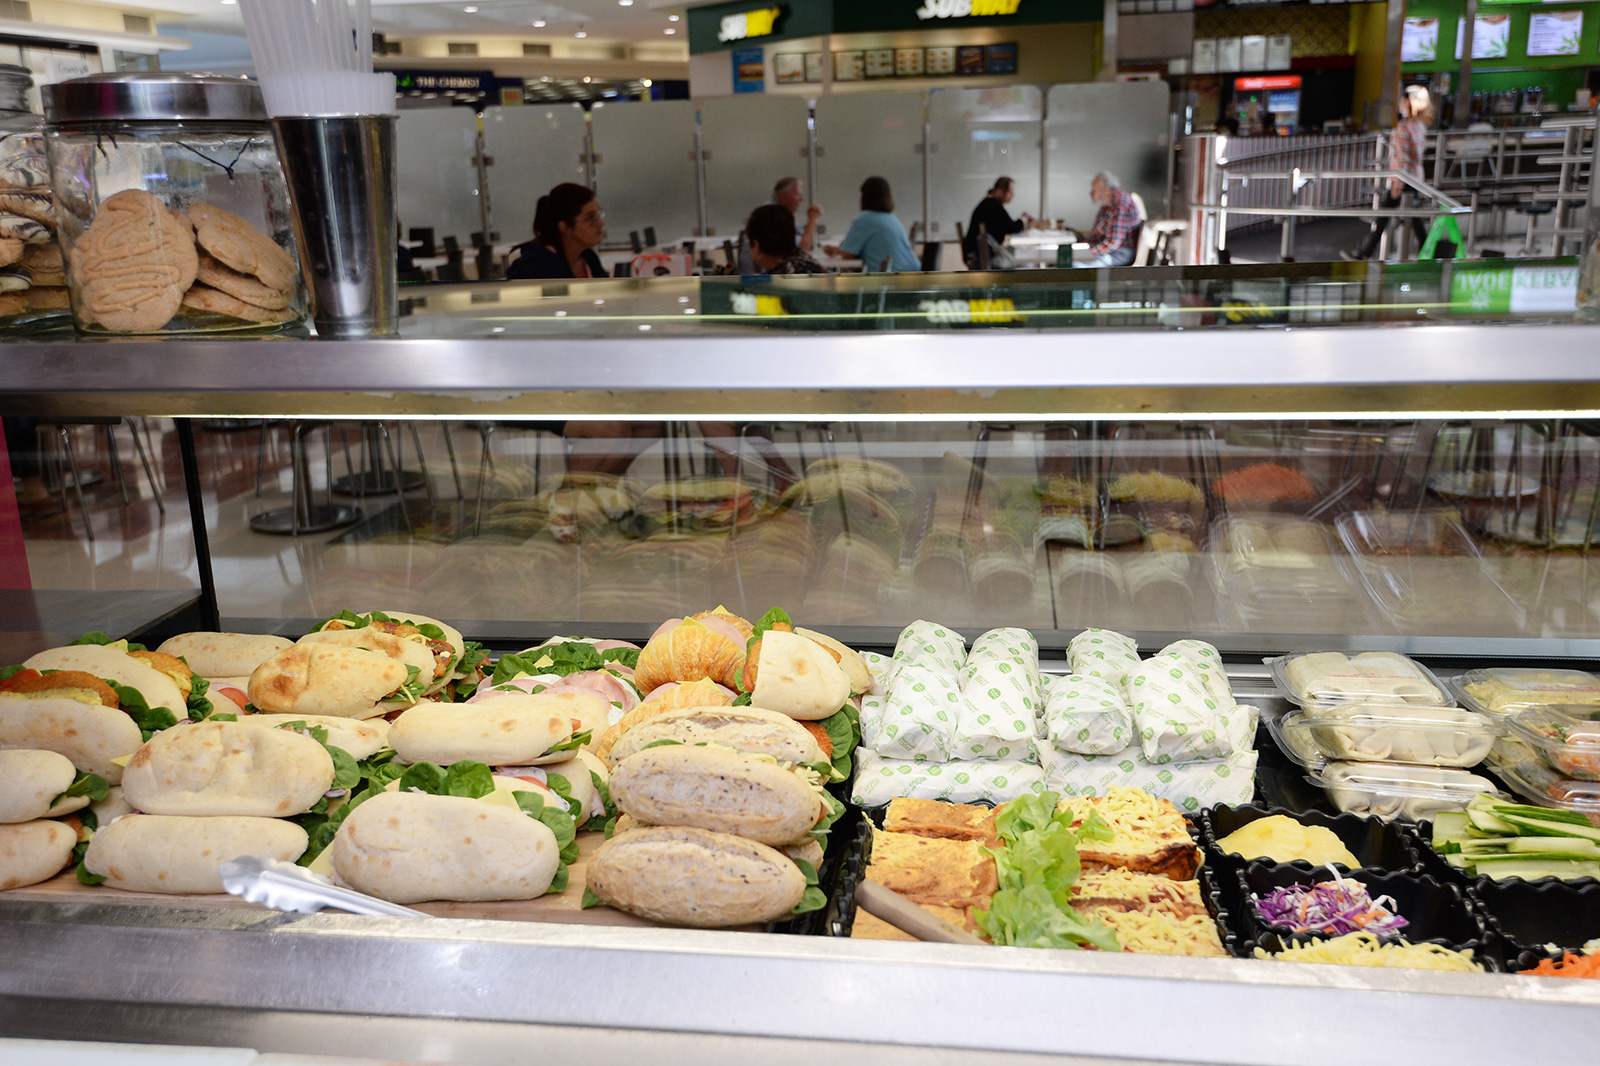 take-a-way-sandwich-shop-healthy-habits-grafton-shopping-world-franchise-5